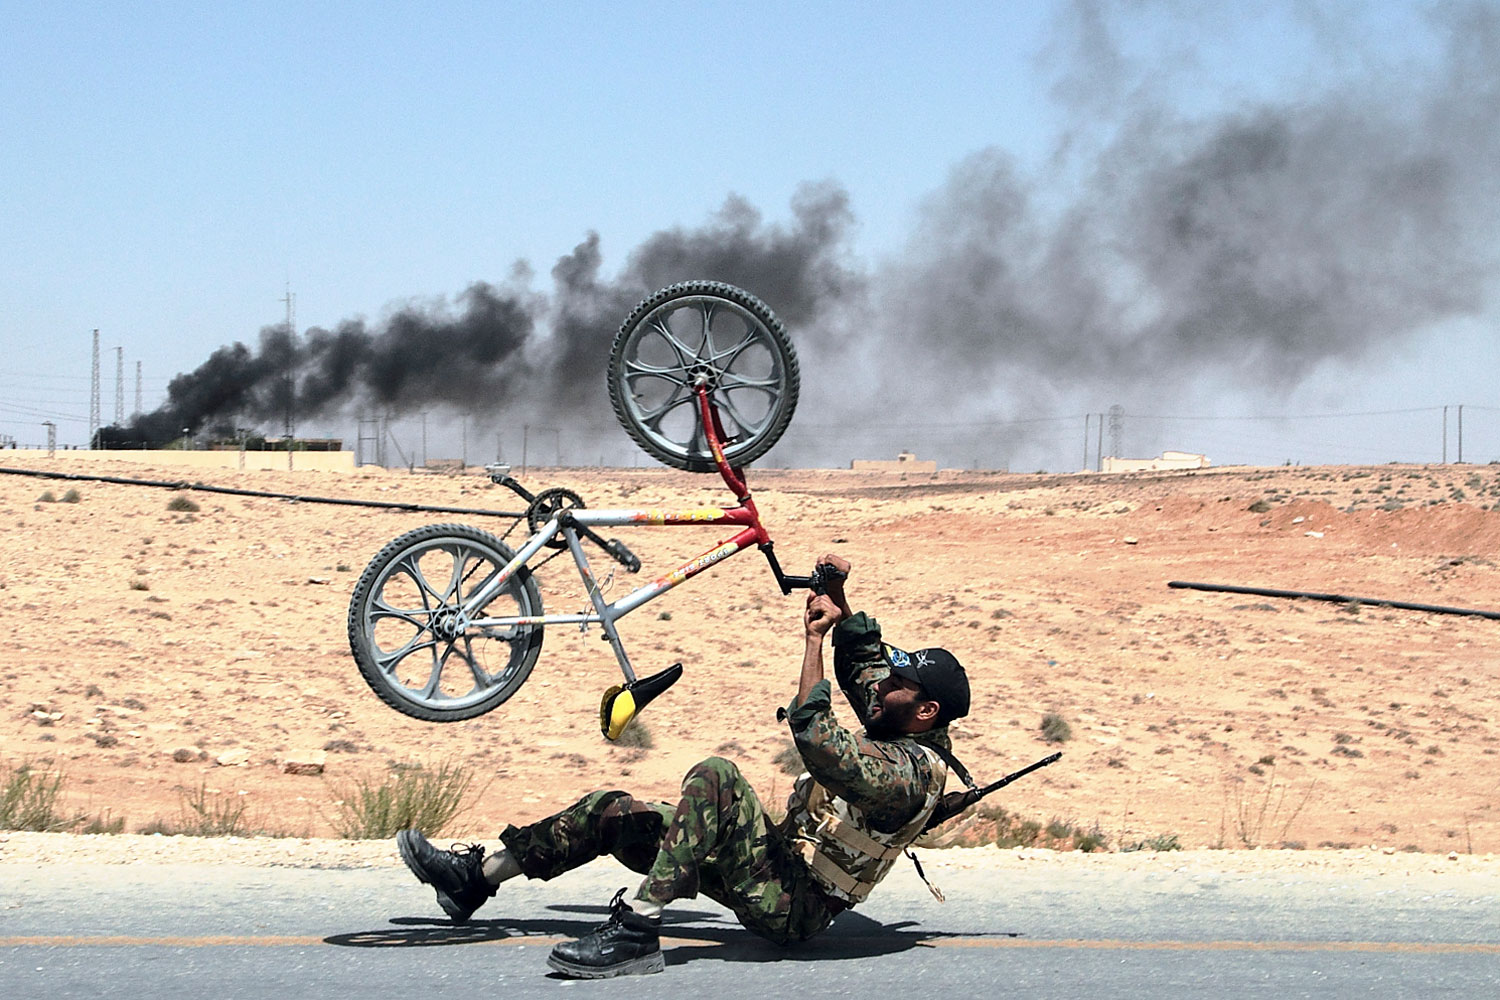 July 6, 2011. A rebel with a bicycle celebrates the liberation of al-Qawalish, 100 kilometers (60 miles) southwest of Tripoli, Libya, after six hours of battle. In the background smoke rises from a the power station that was shelled by retreating soldiers loyal to Moammar Gadhafi.